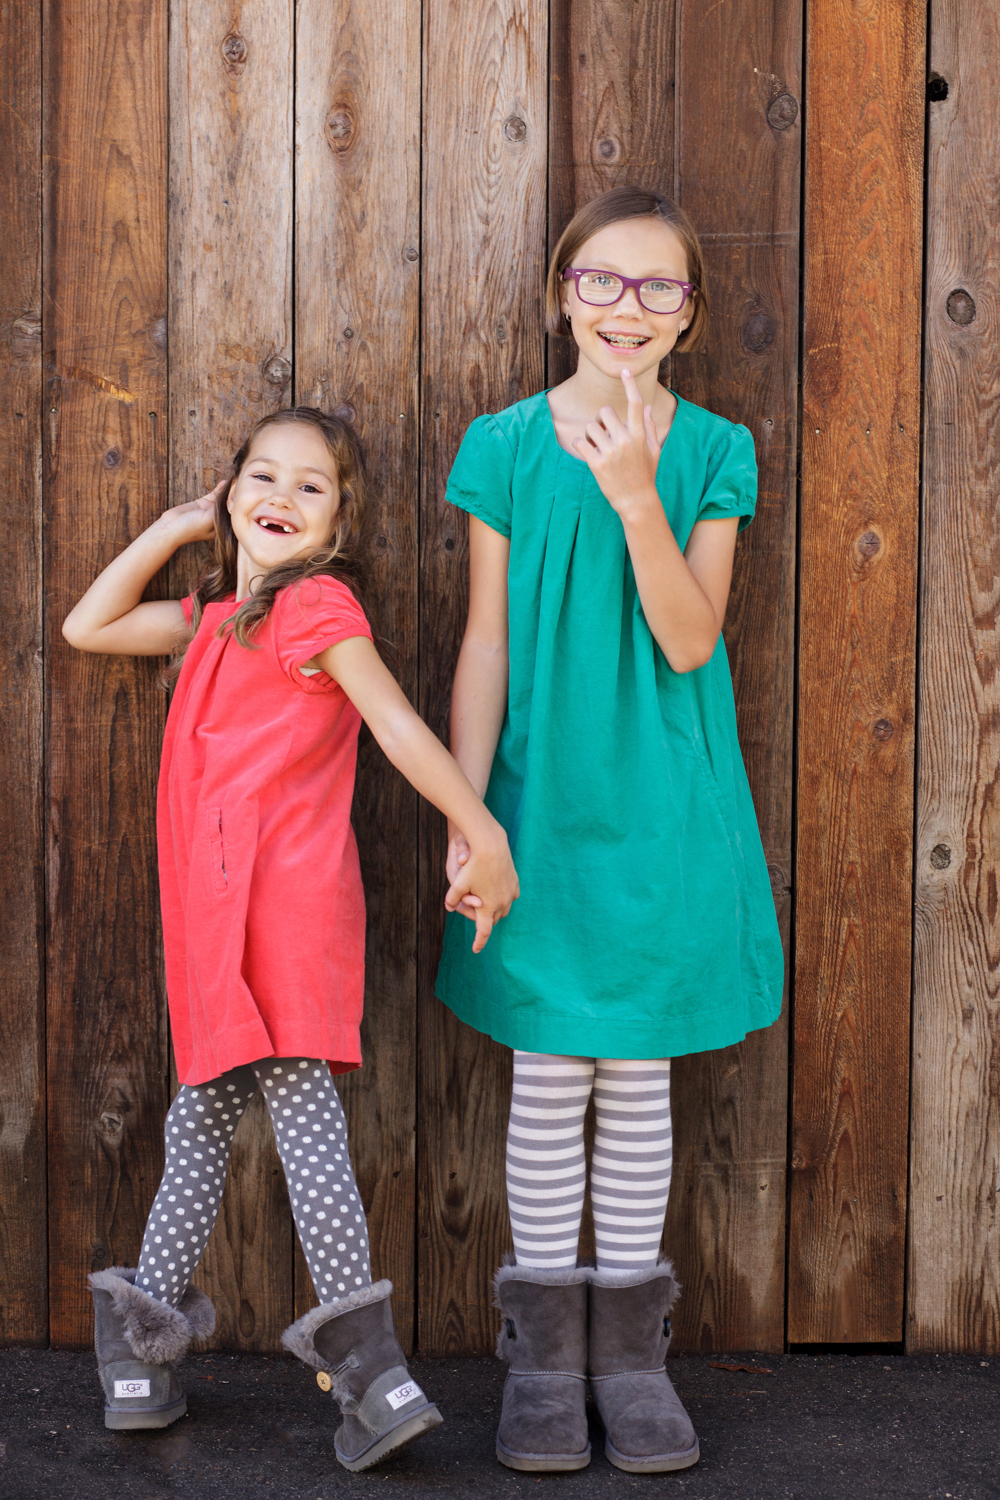 Los Angeles Family Photographer - What to Wear Kids Session - Kids Photography-3.jpg